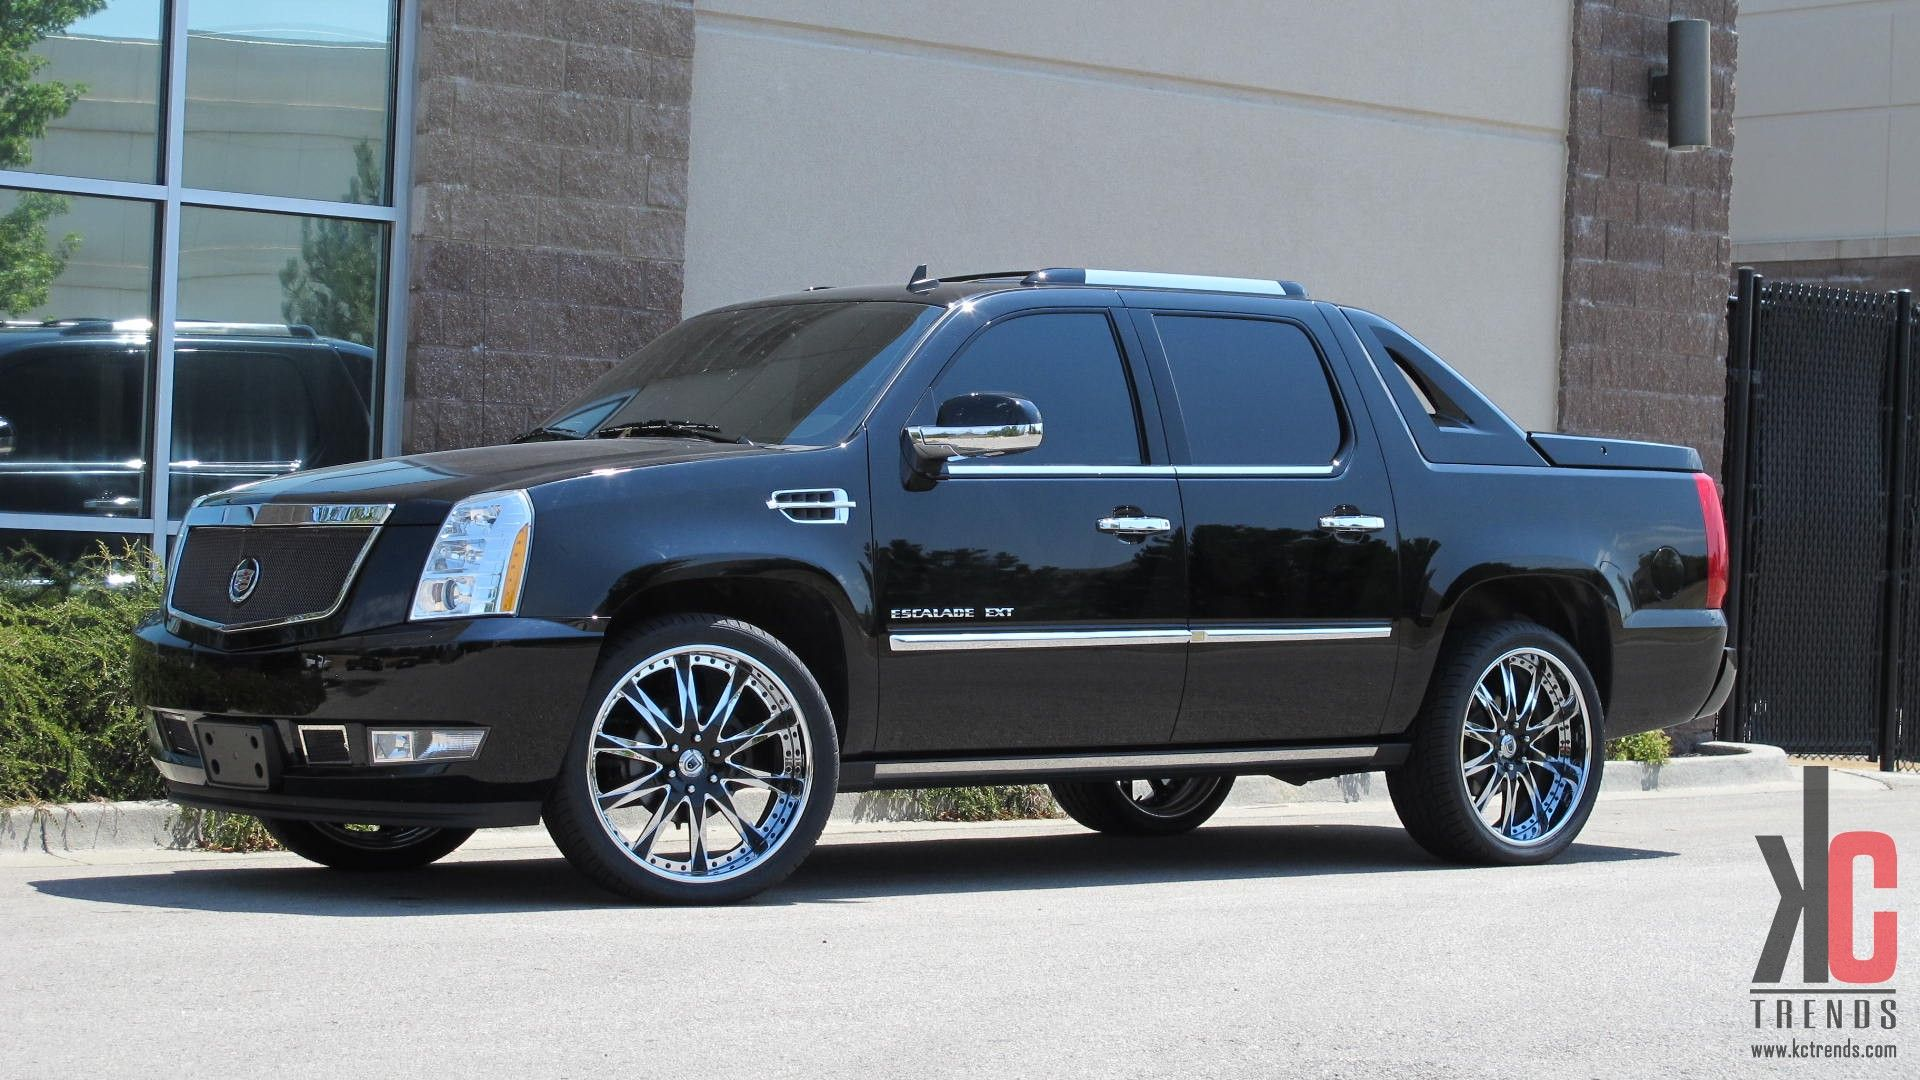 Custom cadillac escalade ext on rims